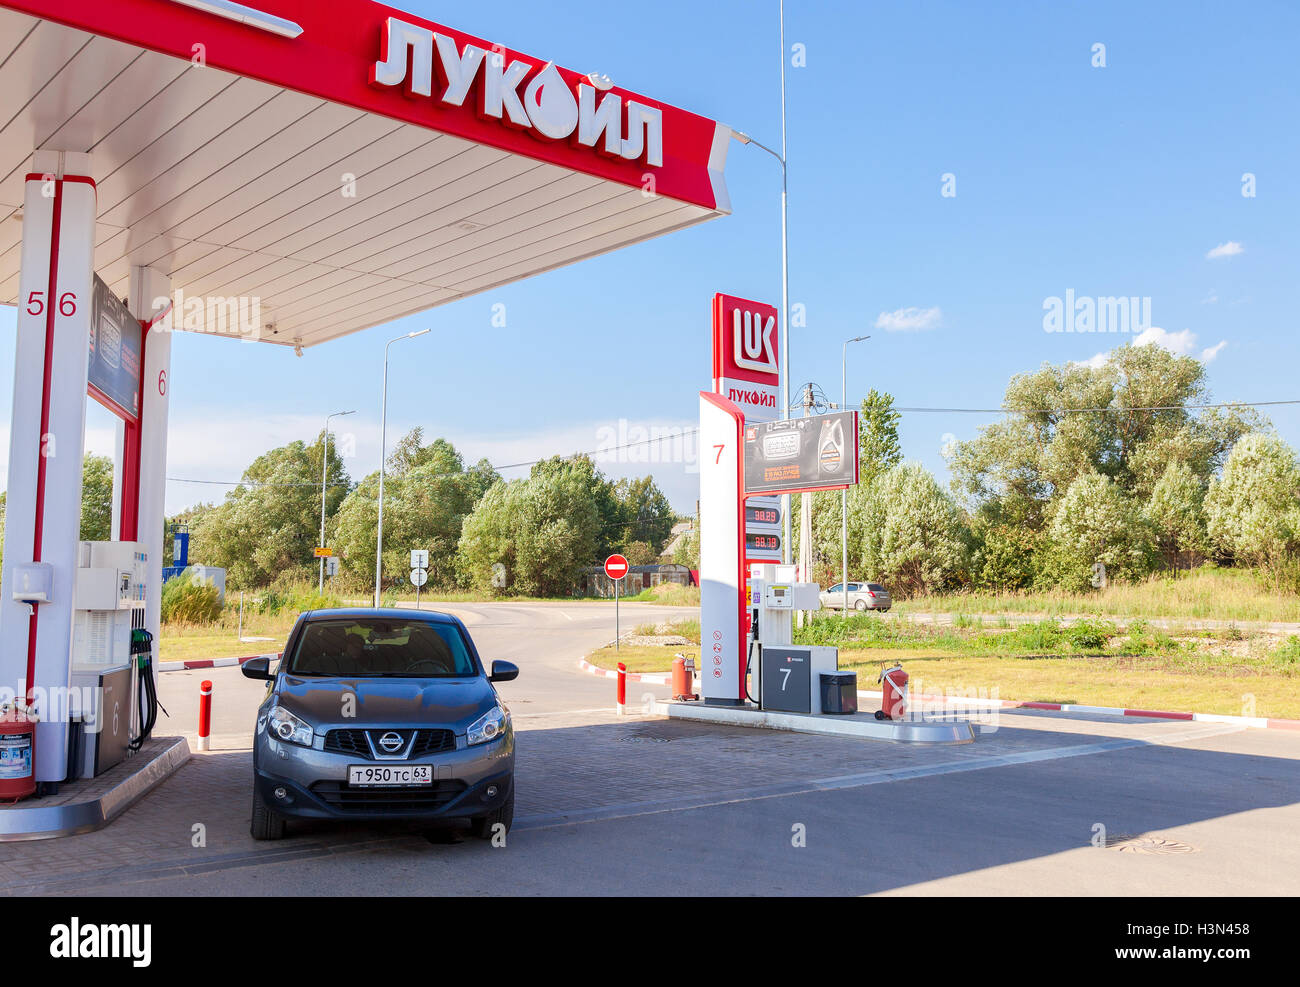 Car Nissan Qashqai at the Lukoil gas station - Stock Image